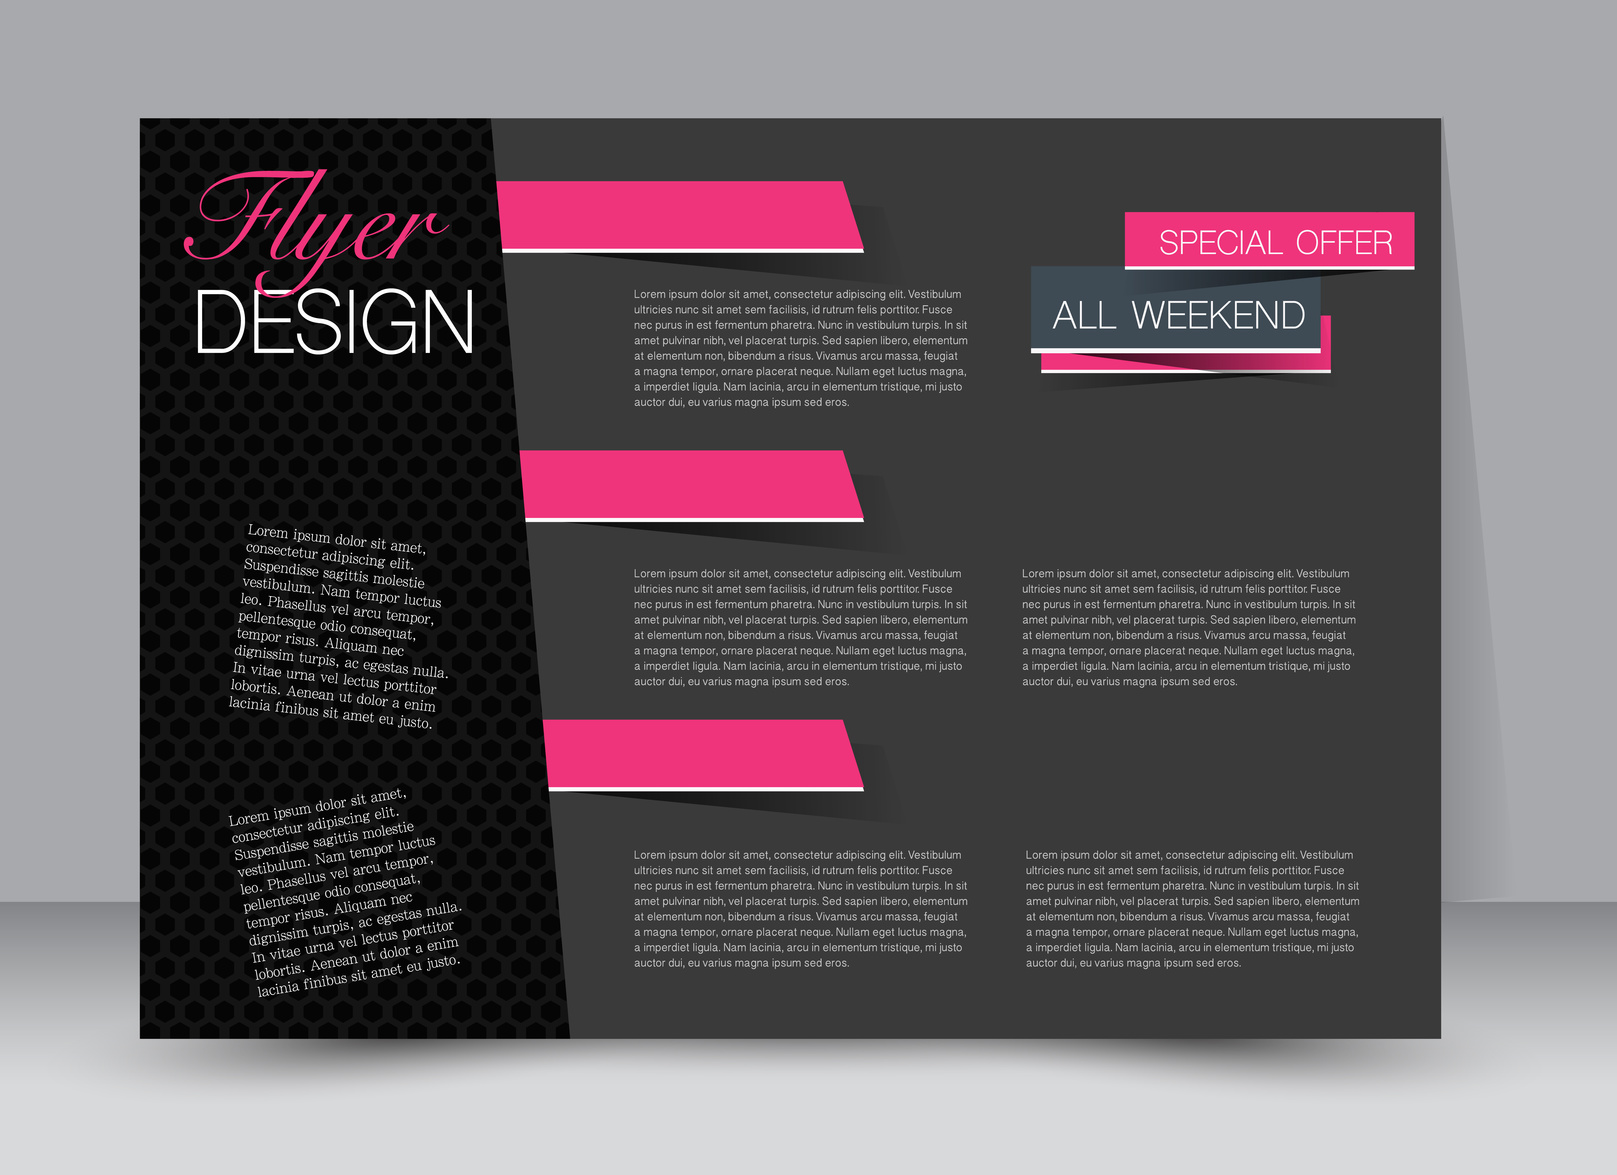 Flyer, brochure, billboard template design landscape orientation for education, presentation, website. Pink and black color. Editable vector illustration.